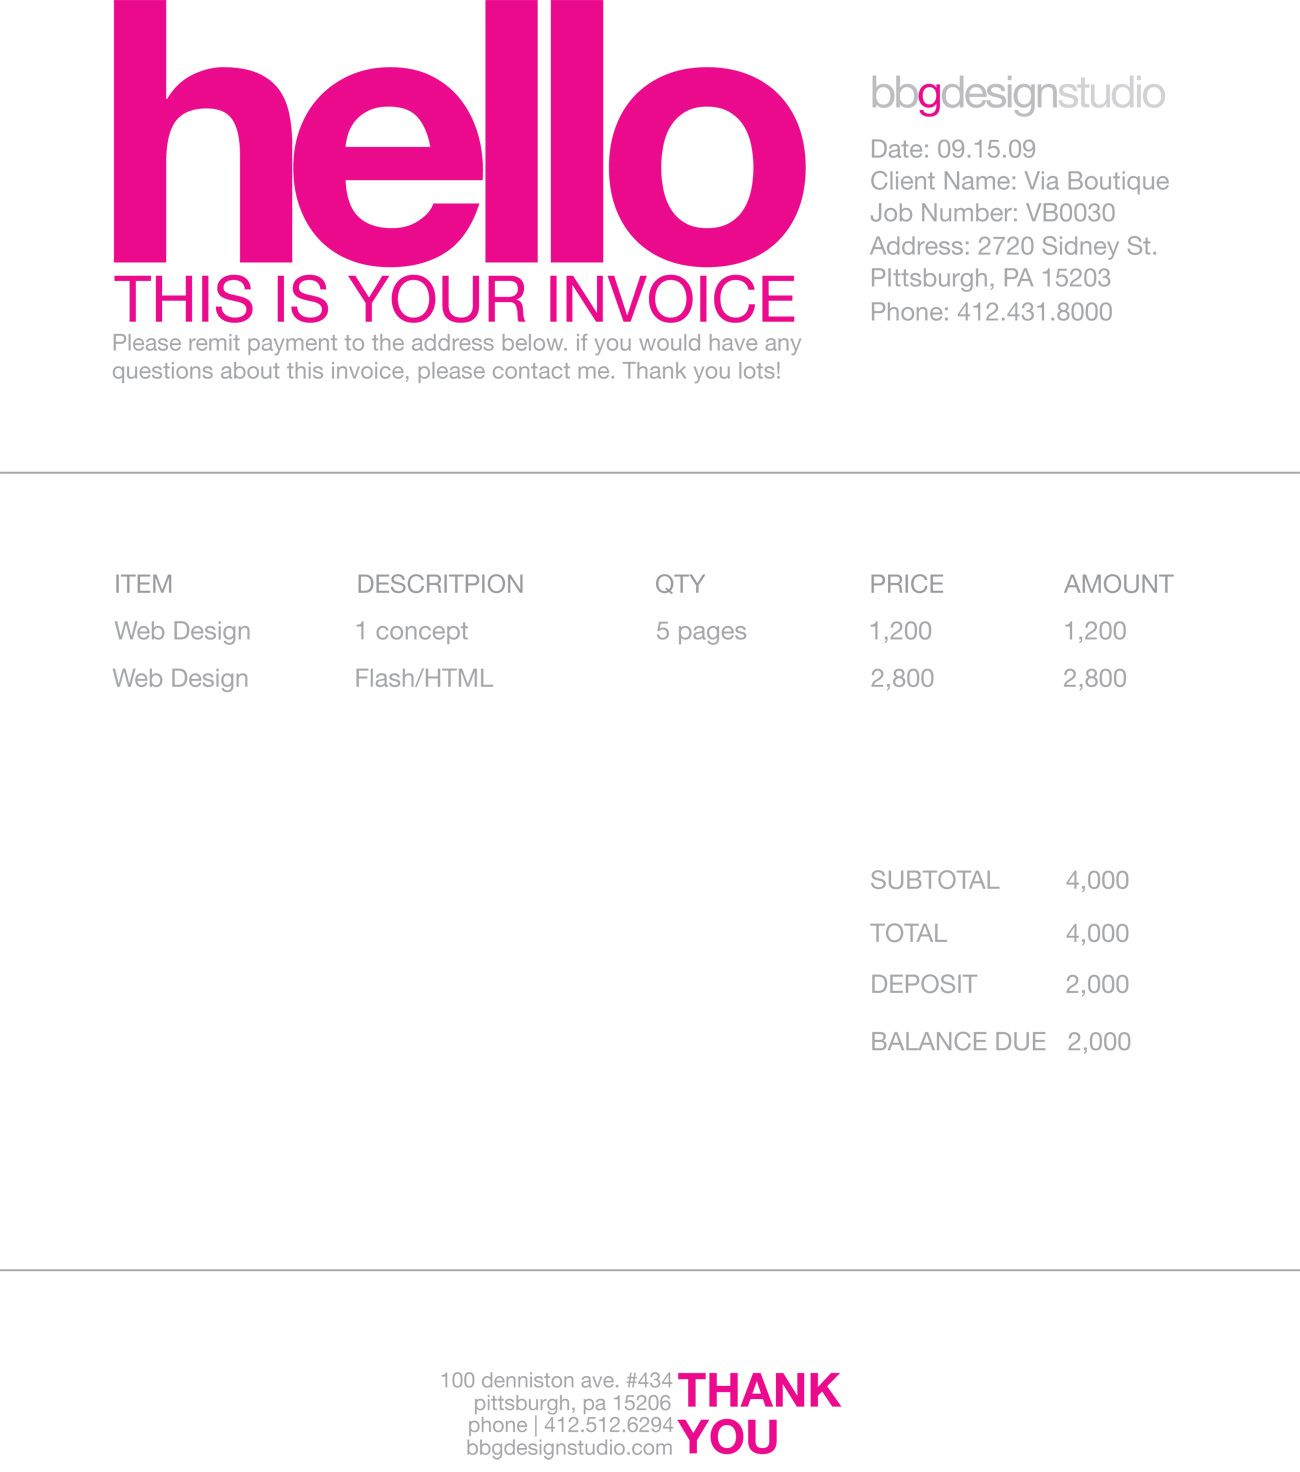 Theologygeekblogus  Seductive  Images About Invoice Design On Pinterest With Exciting Invoice Copy Besides Basic Invoice Template Pdf Furthermore Invoice Template For Microsoft Word With Alluring Create A Paypal Invoice Also Paypal Send An Invoice In Addition Adp Online Invoice And Blank Auto Repair Invoice As Well As Audi Invoice Price Additionally Template Of Invoice From Pinterestcom With Theologygeekblogus  Exciting  Images About Invoice Design On Pinterest With Alluring Invoice Copy Besides Basic Invoice Template Pdf Furthermore Invoice Template For Microsoft Word And Seductive Create A Paypal Invoice Also Paypal Send An Invoice In Addition Adp Online Invoice From Pinterestcom